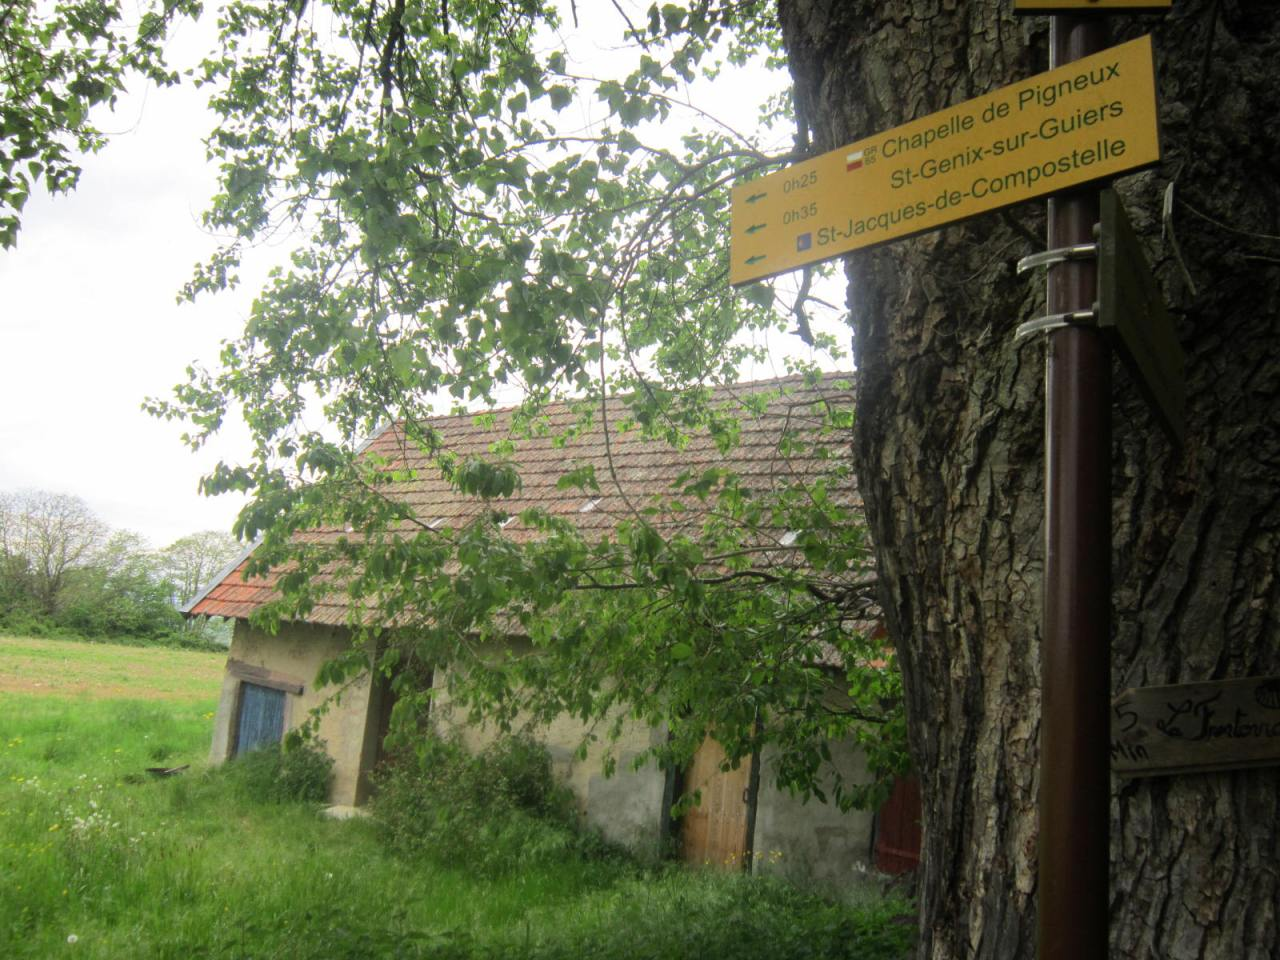 The (extremely) difficult walk to St-Genix-sur-Guiers